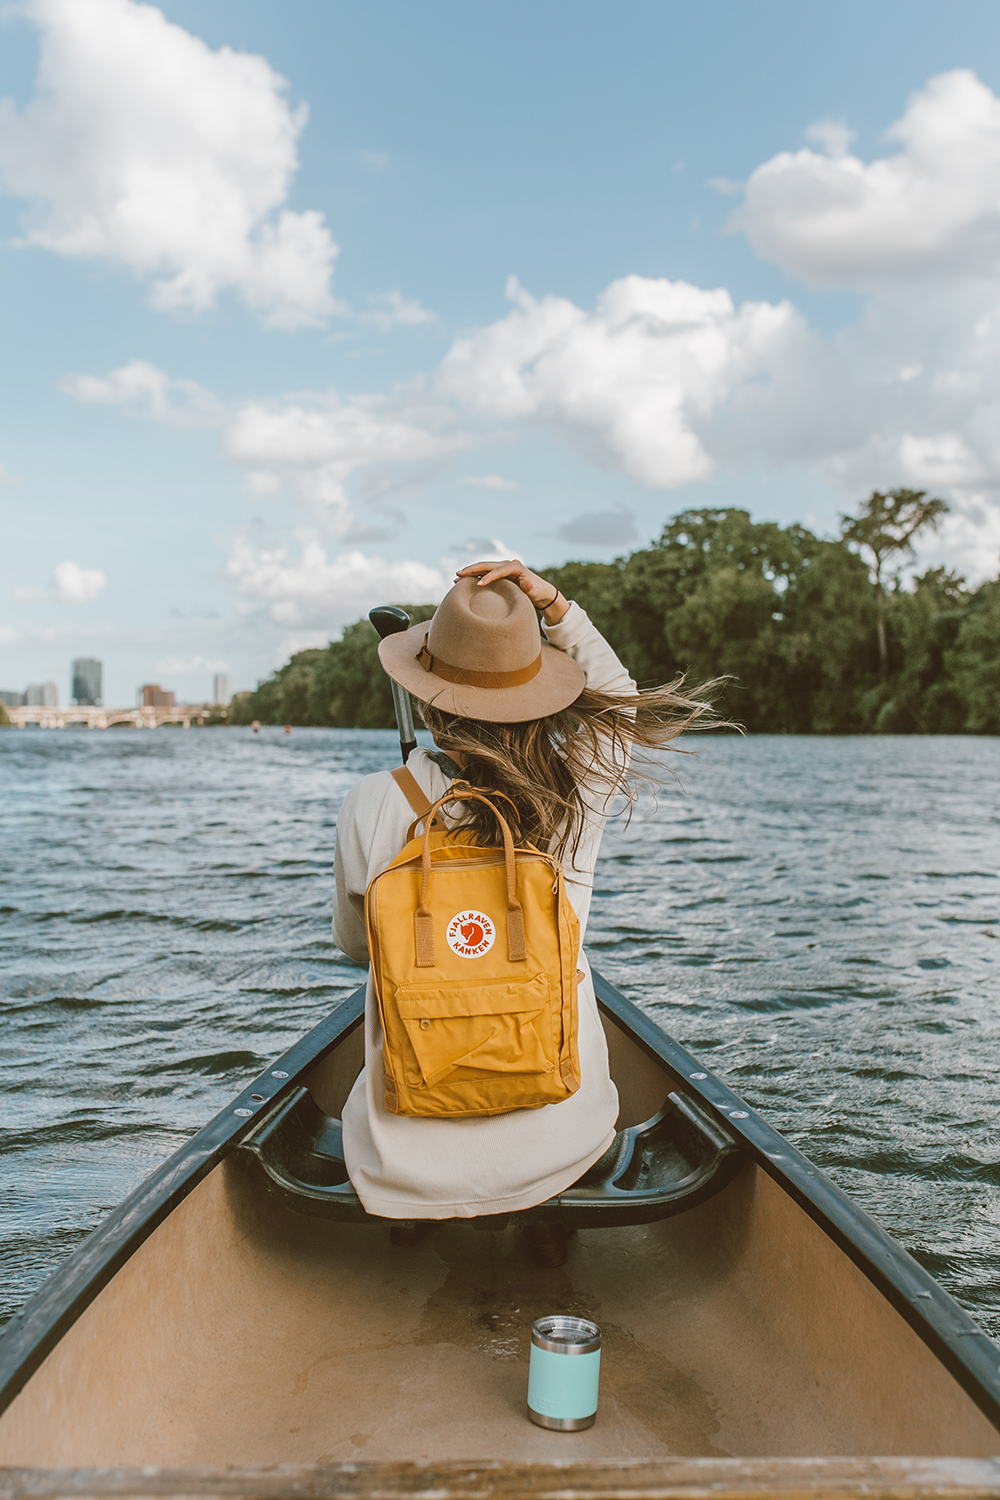 livvyland-blog-olivia-watson-canoe-lady-bird-lake-austin-texas-lifestyle-fashion-blogger-backcountry-fjallraven-kanken-ochre-mustard-yellow-backpack-yeti-rambler-3